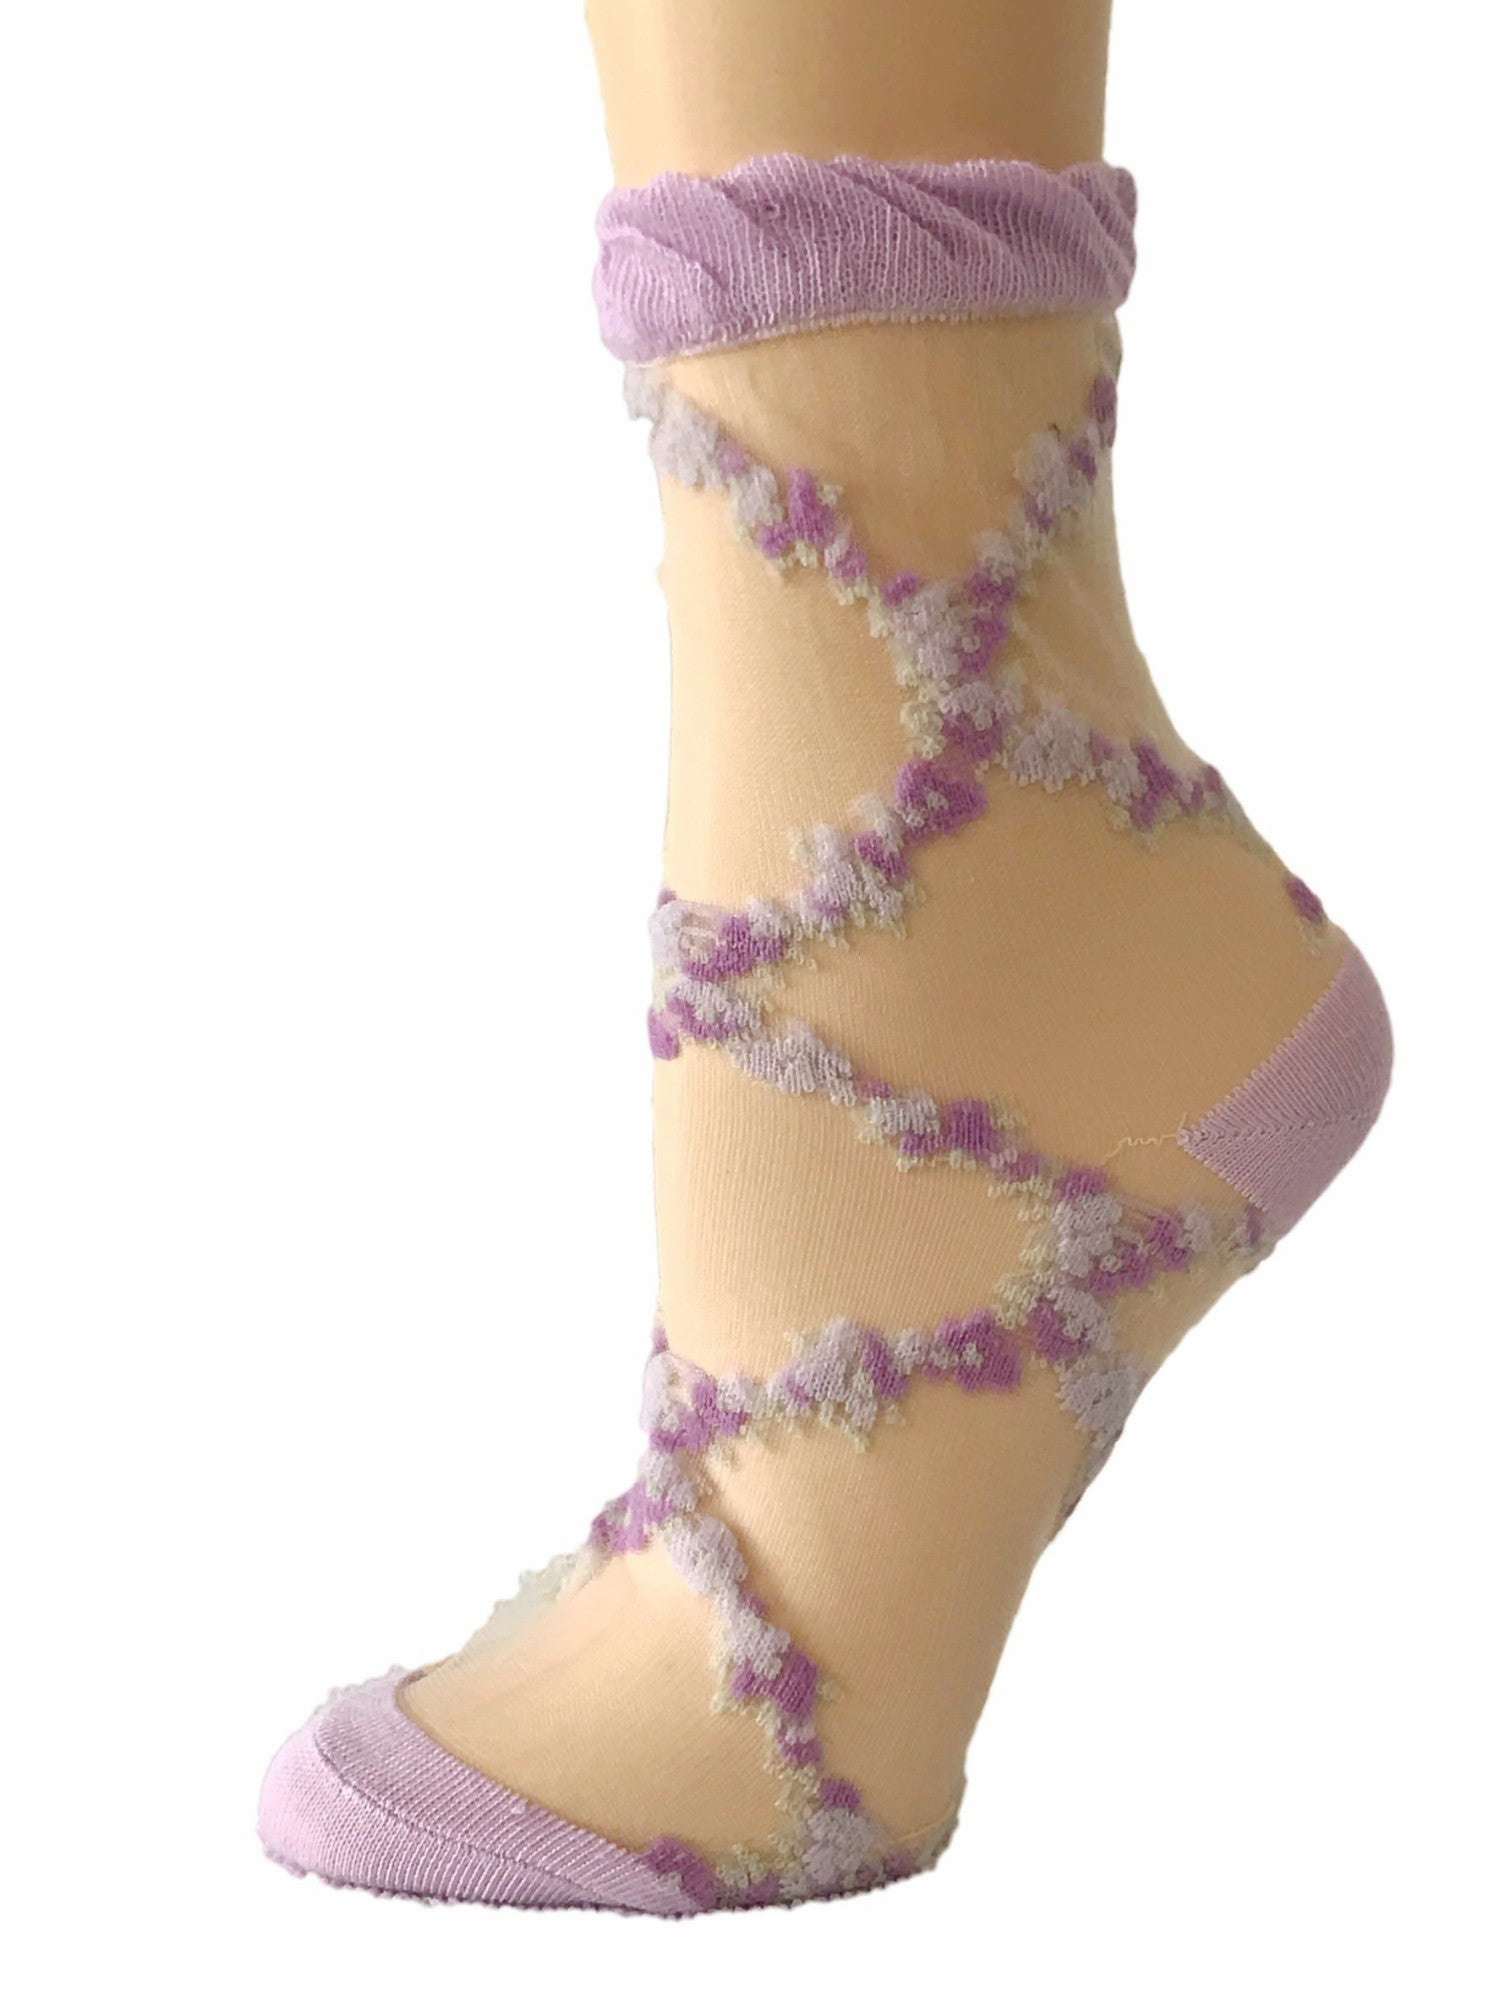 Stunning Purple/Pink Patterned Sheer Socks-Global Trendz Fashion®